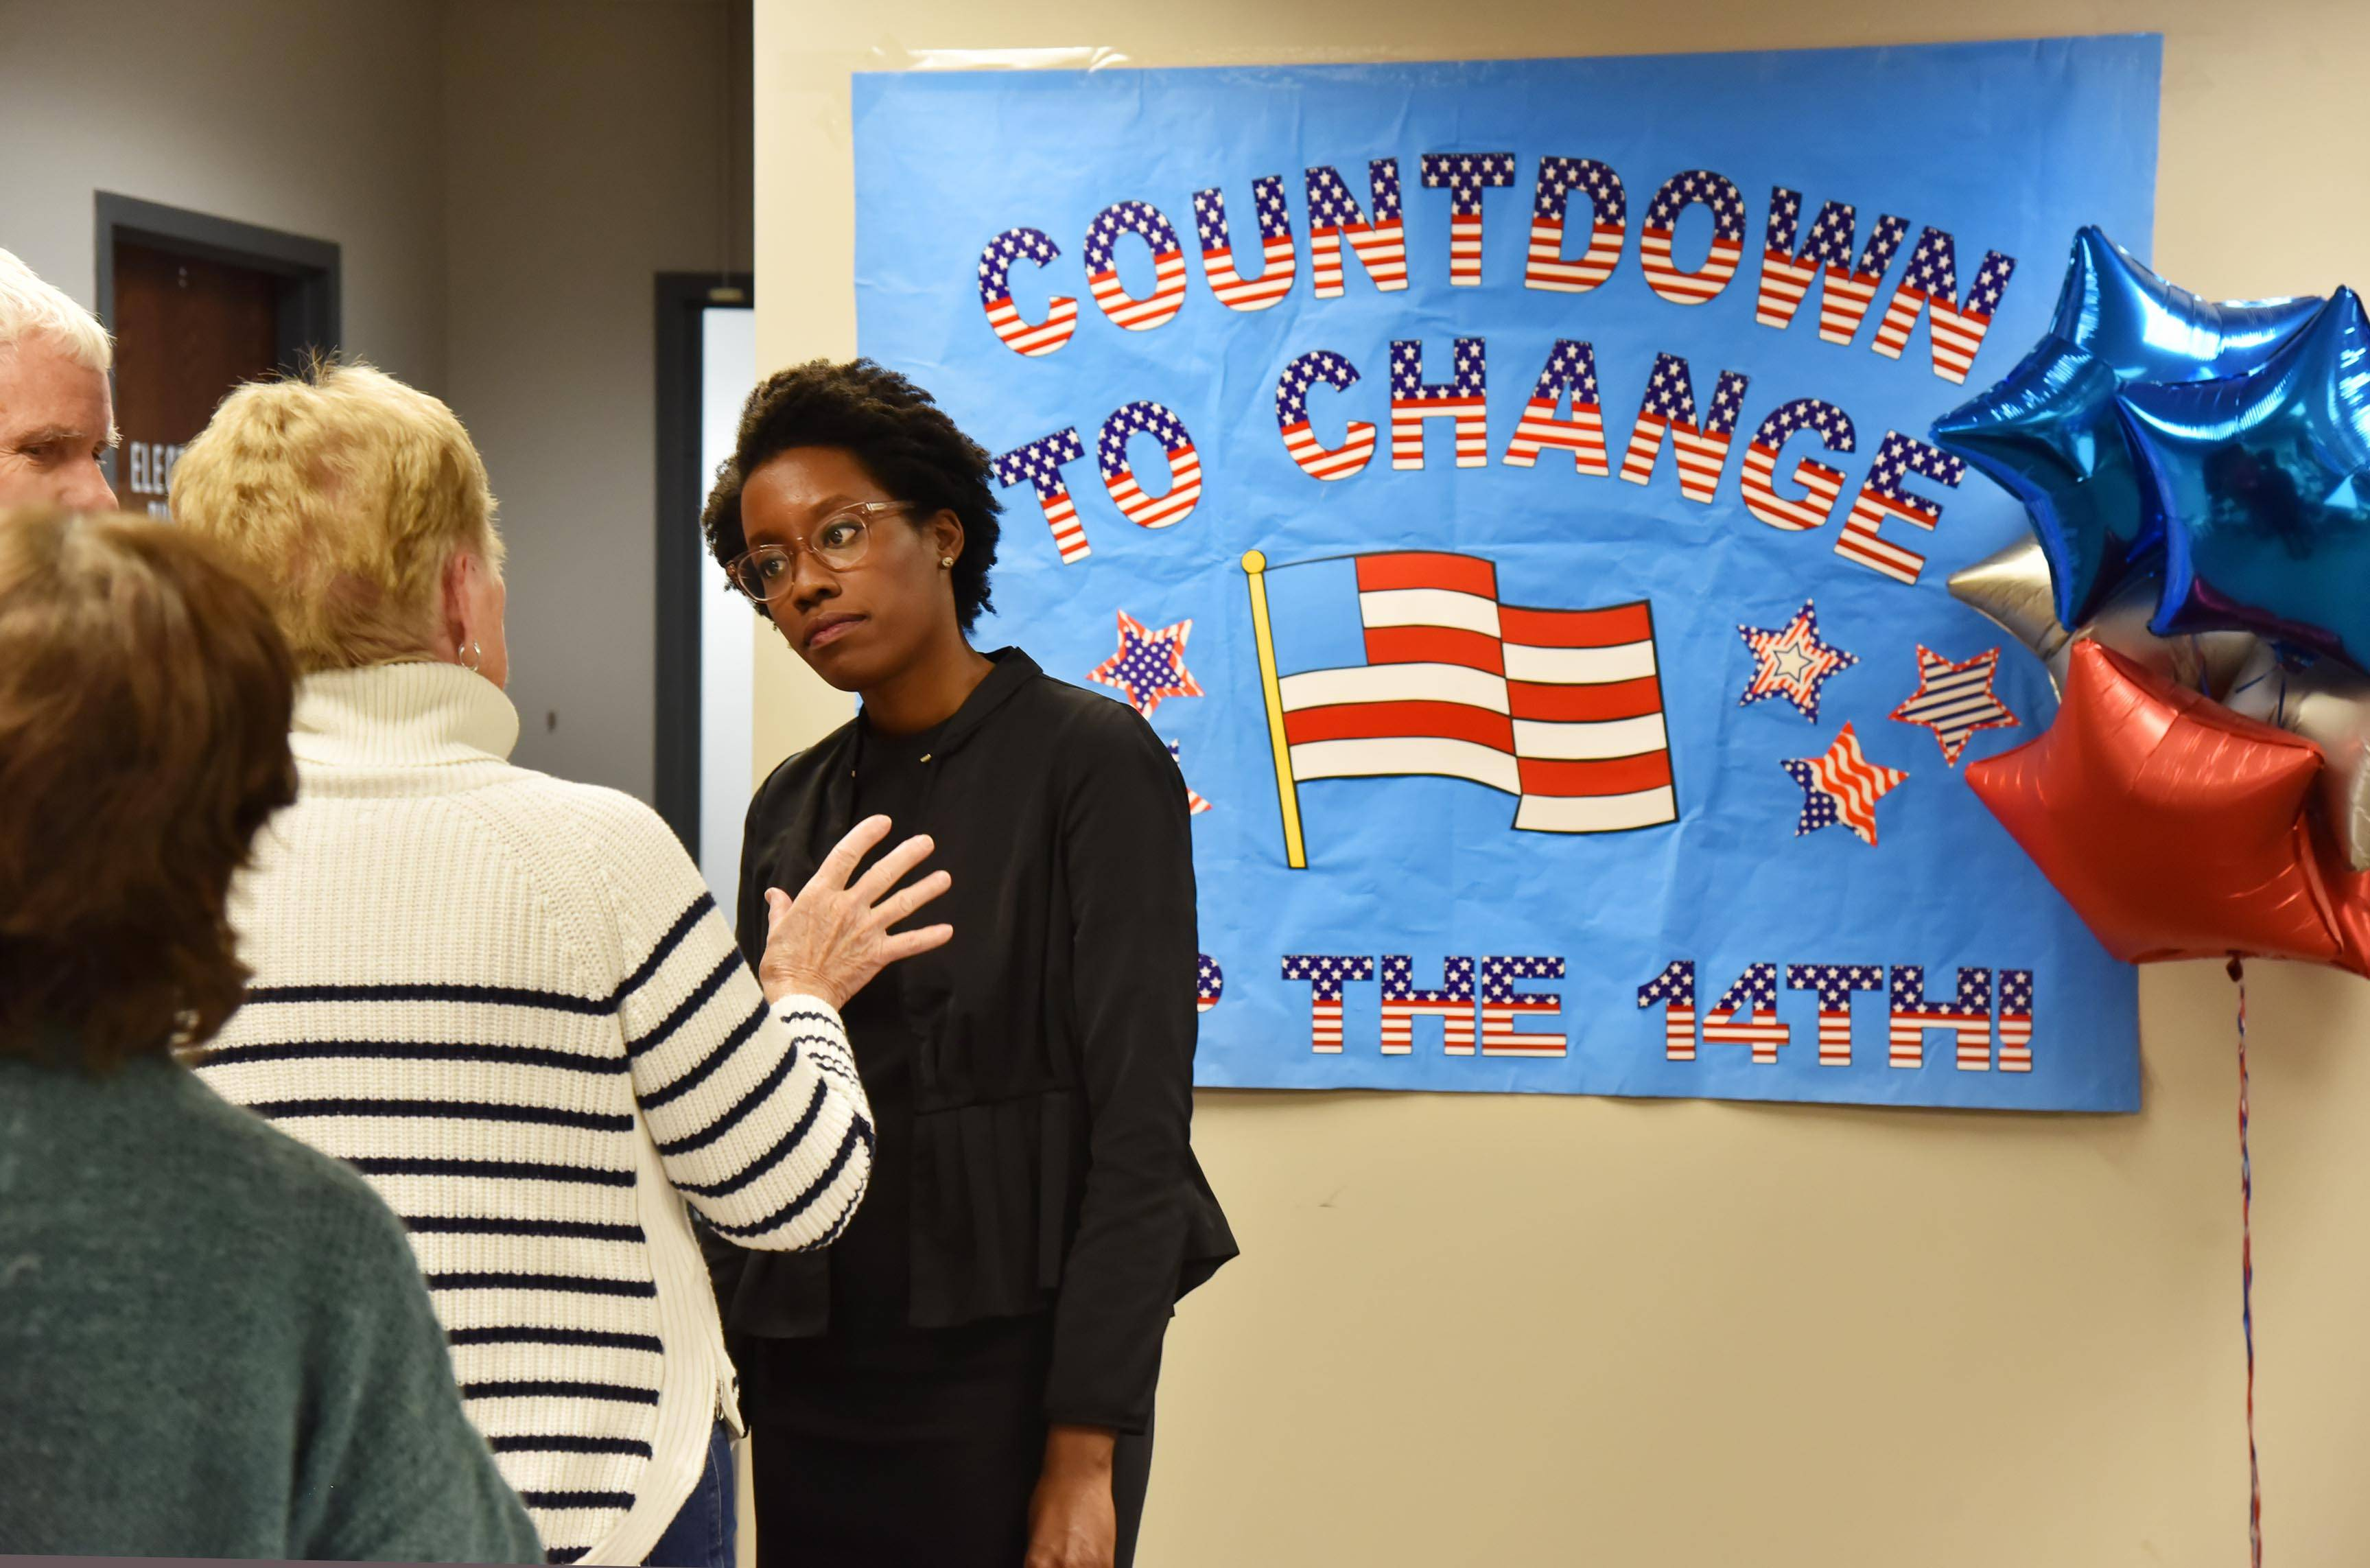 Congresswoman-elect Lauren Underwood talks with volunteers and supporters of her campaign Wednesday at her headquarters in St. Charles. She'll be sworn in Jan. 3.